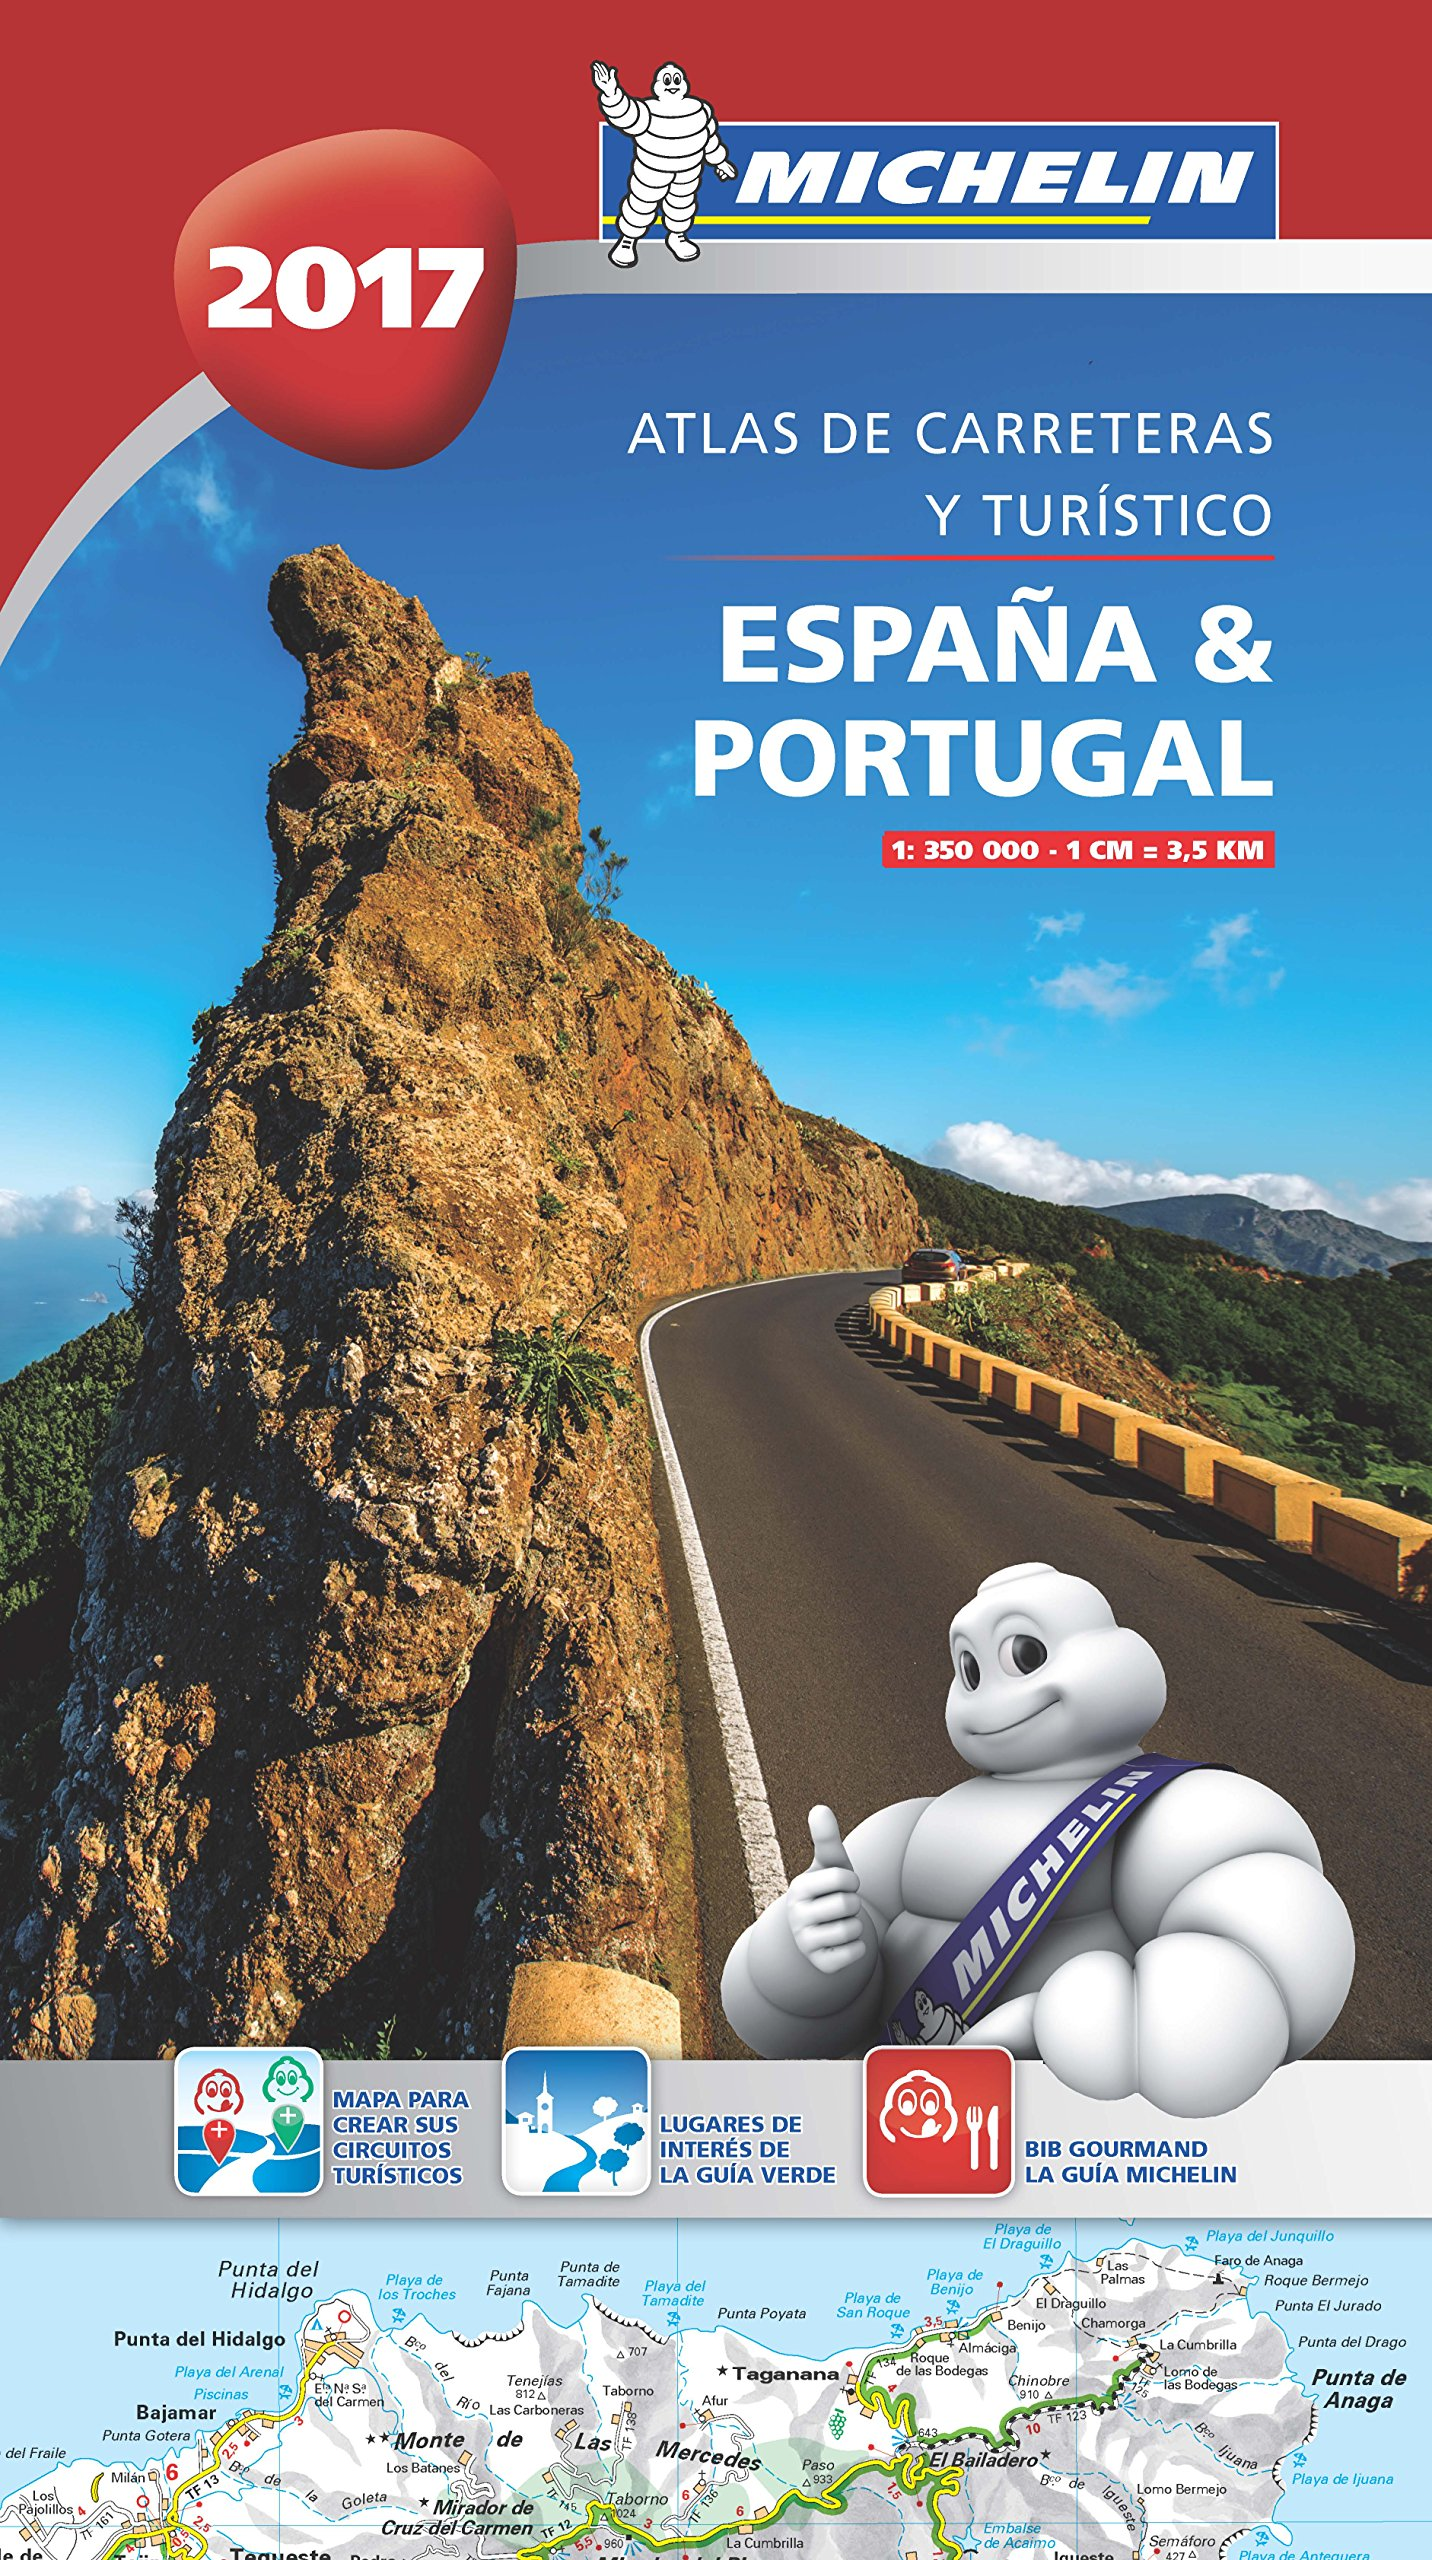 España & Portugal 2017 Atlas de carreteras y turístico Atlas de carreteras Michelin: Amazon.es: MICHELIN: Libros